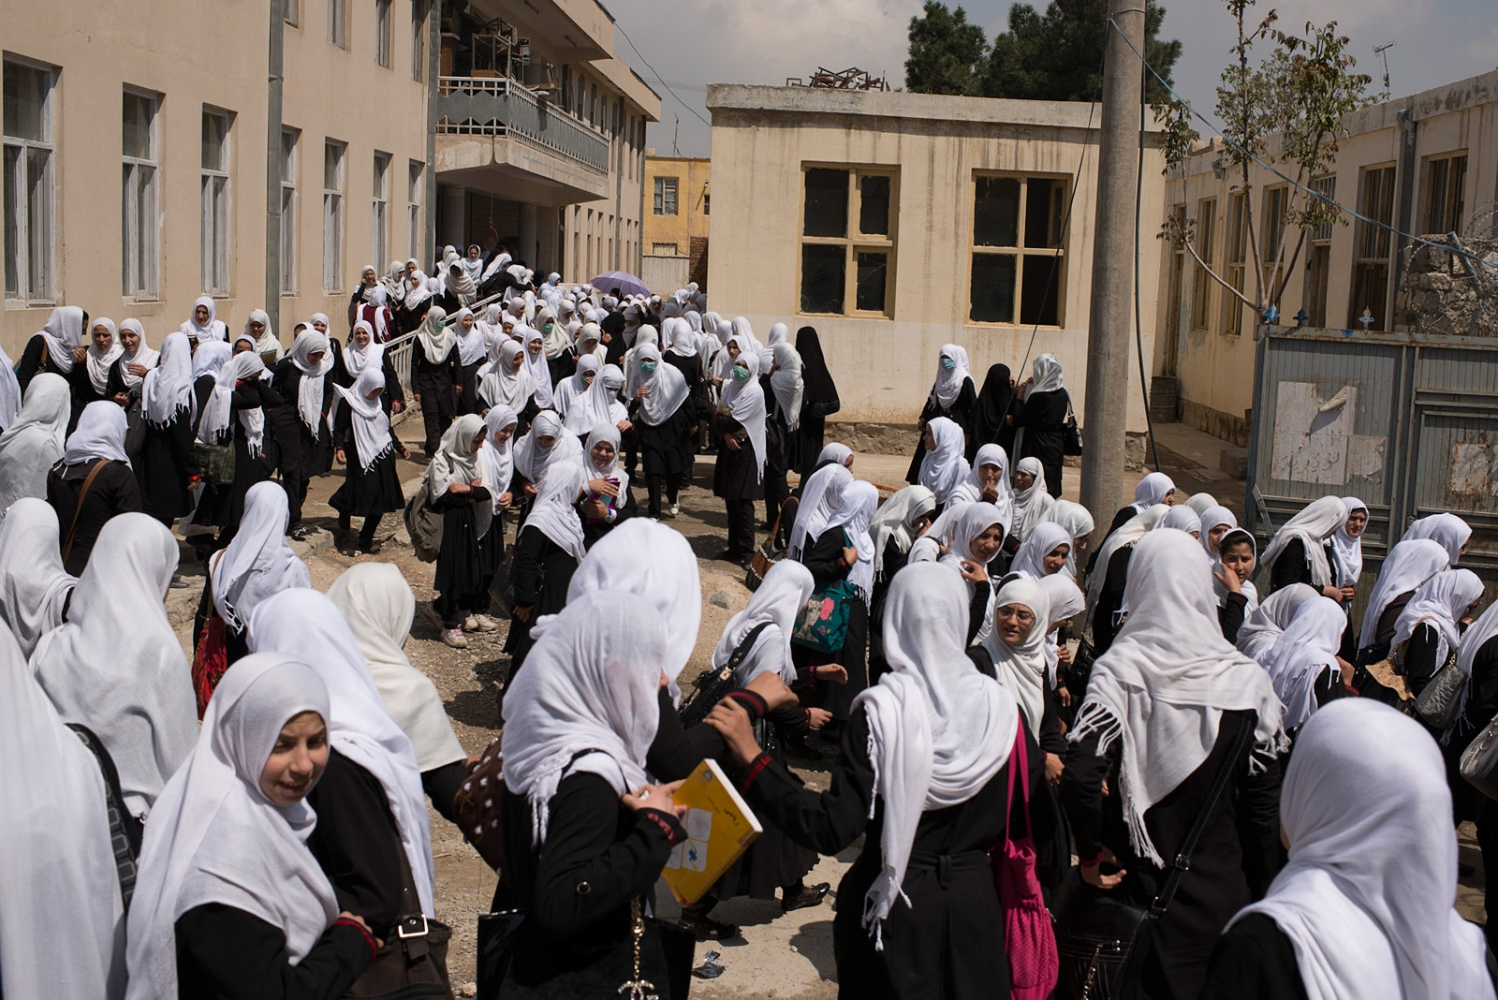 KABUL, AFGHANISTAN | 2015-04-20 | Students attending the second shift of Nur Muhammad Shah all-girl school pour into the hallways on a Monday morning. This shool, located on the hill (Sar-e Tappa) in Karte Now neighborhood, admits 13,000 girls over 5 shifts from grade 1 to 12. Under Taliban regime, girls were not allowed to attend schools. Now, 14 years later, thousands and thousands of girls in black uniform and white headscarves, passionately walk to their schools everyday here in Kabul.